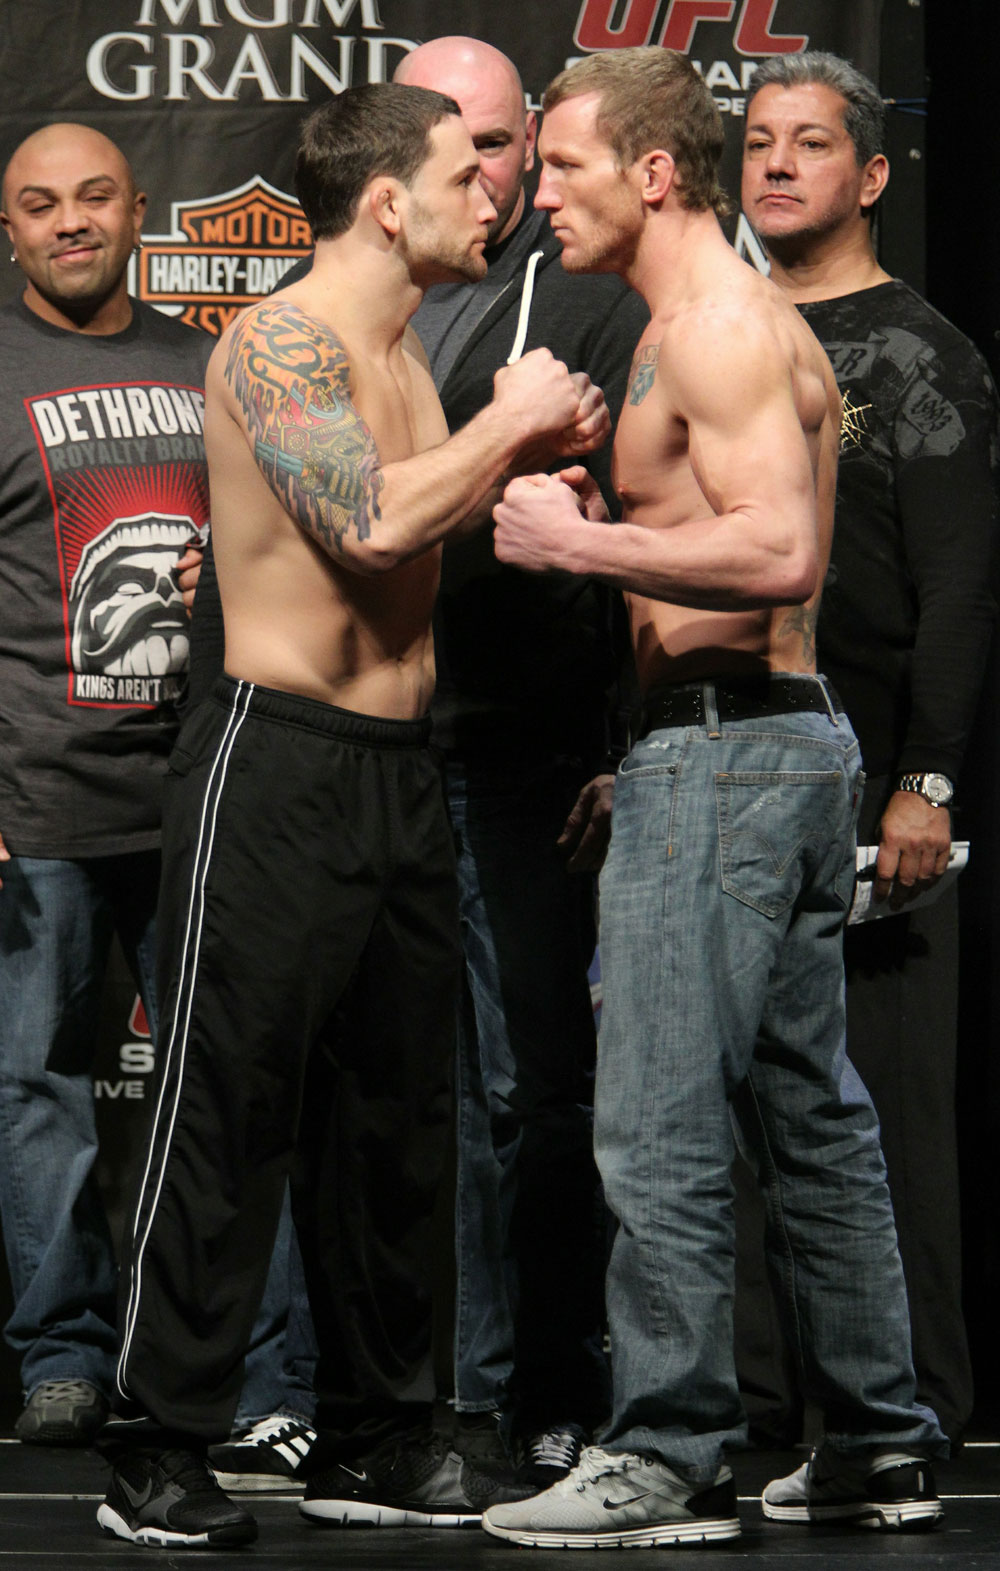 Edgar vs. Maynard at the UFC 125 Weigh-in.